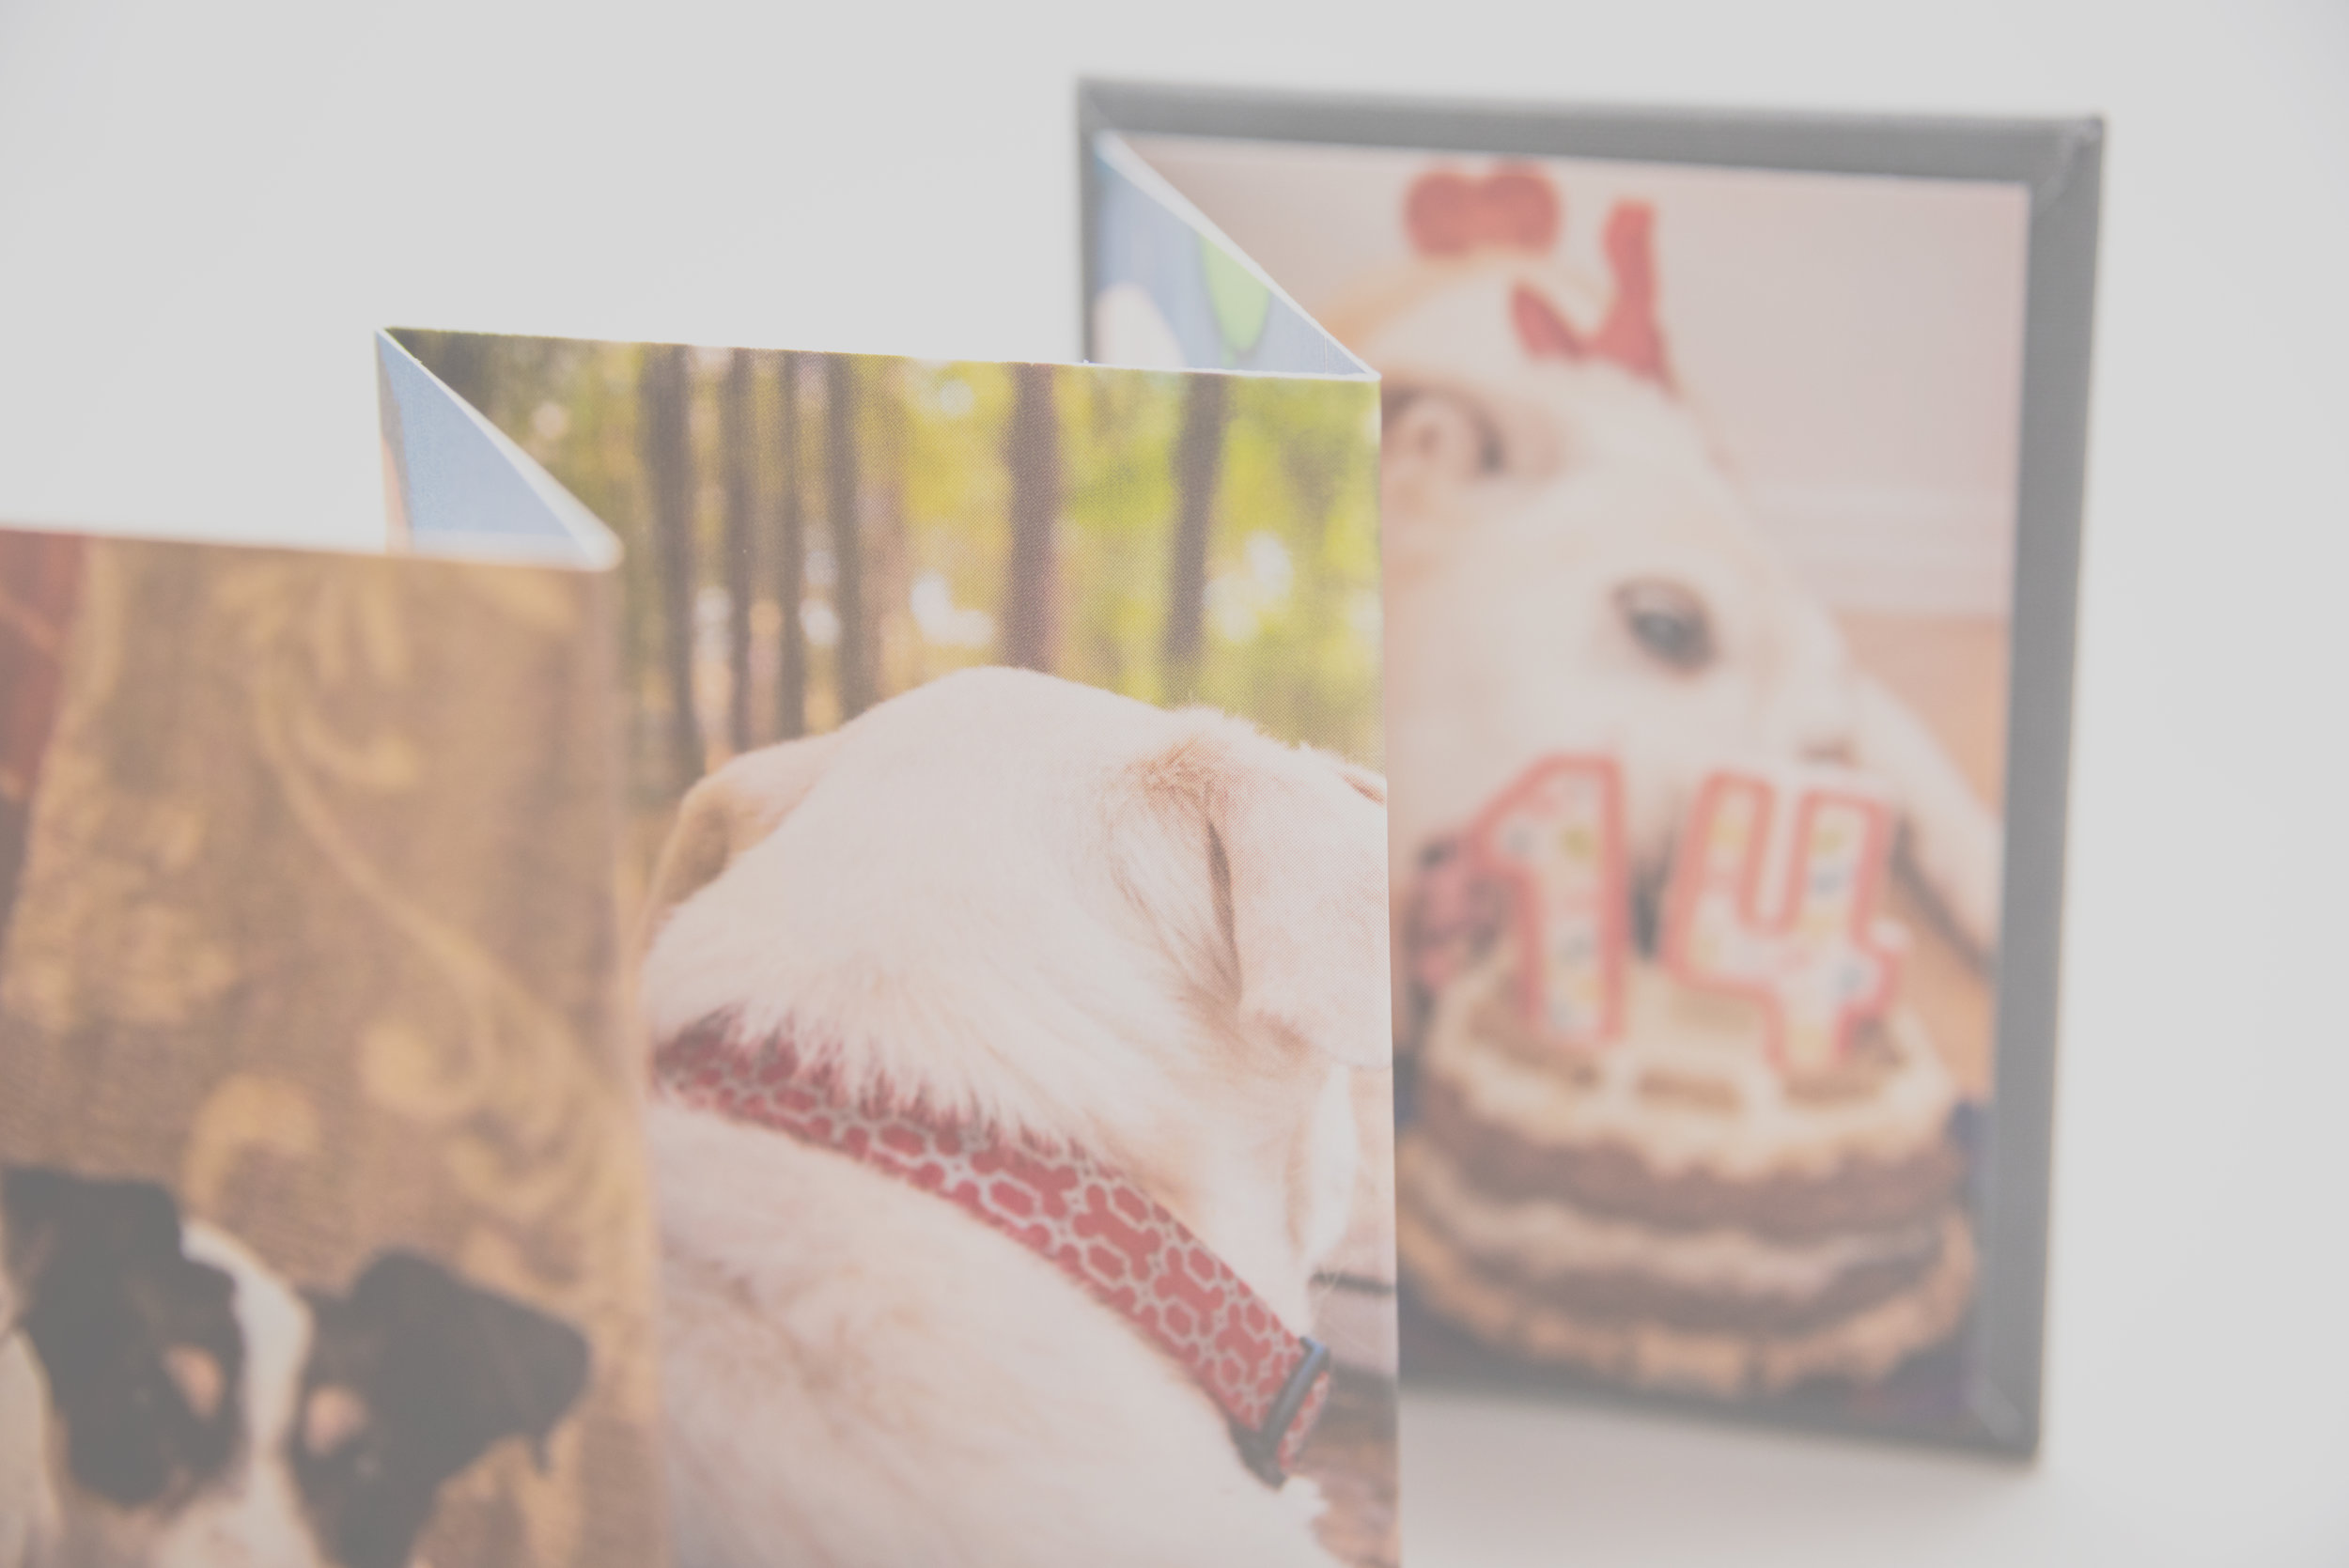 Gift prints and more… - We offer accordion books and more wonderful ways to show off your loved ones! Gift prints starting at only $49. Digital negatives starting at $100.